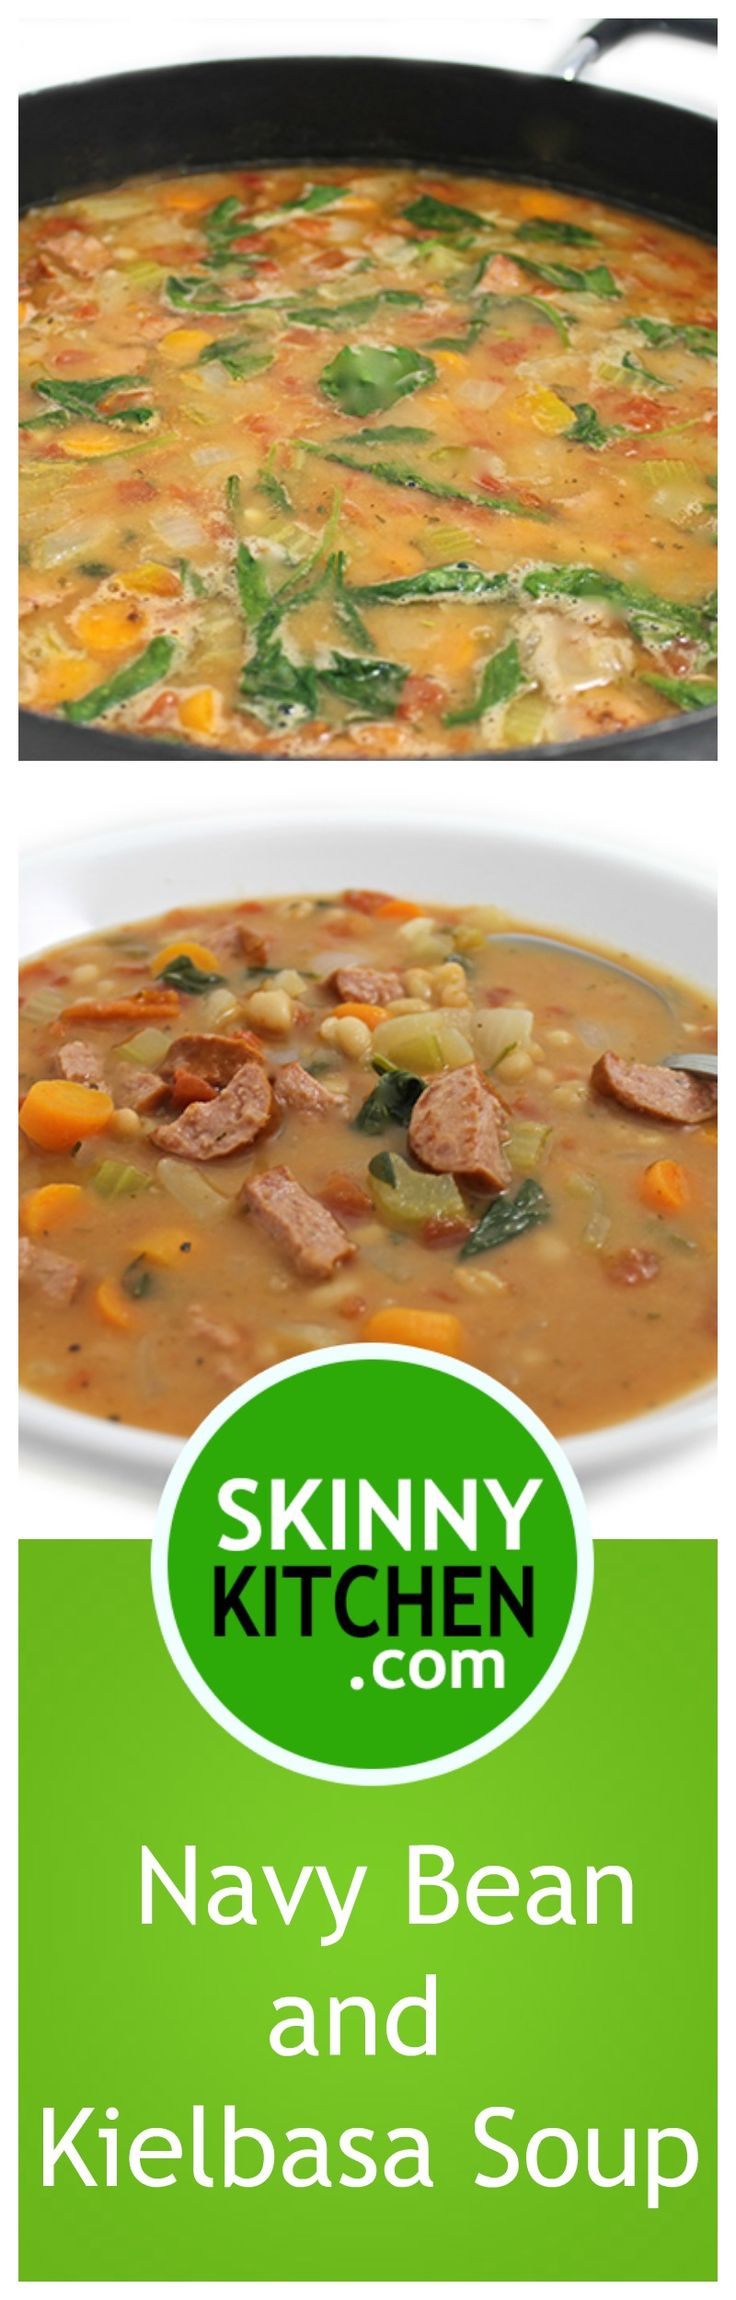 Navy Bean, Spinach and Kielbasa Soup. It's a richly flavorful, very hearty, main course soup. Each bowl has 356 calories, 9g fat & 8 SmartPoints. #soup #glutenfree #smartpoints https://www.skinnykitchen.com/recipes/navy-bean-spinach-and-kielbasa-soup/